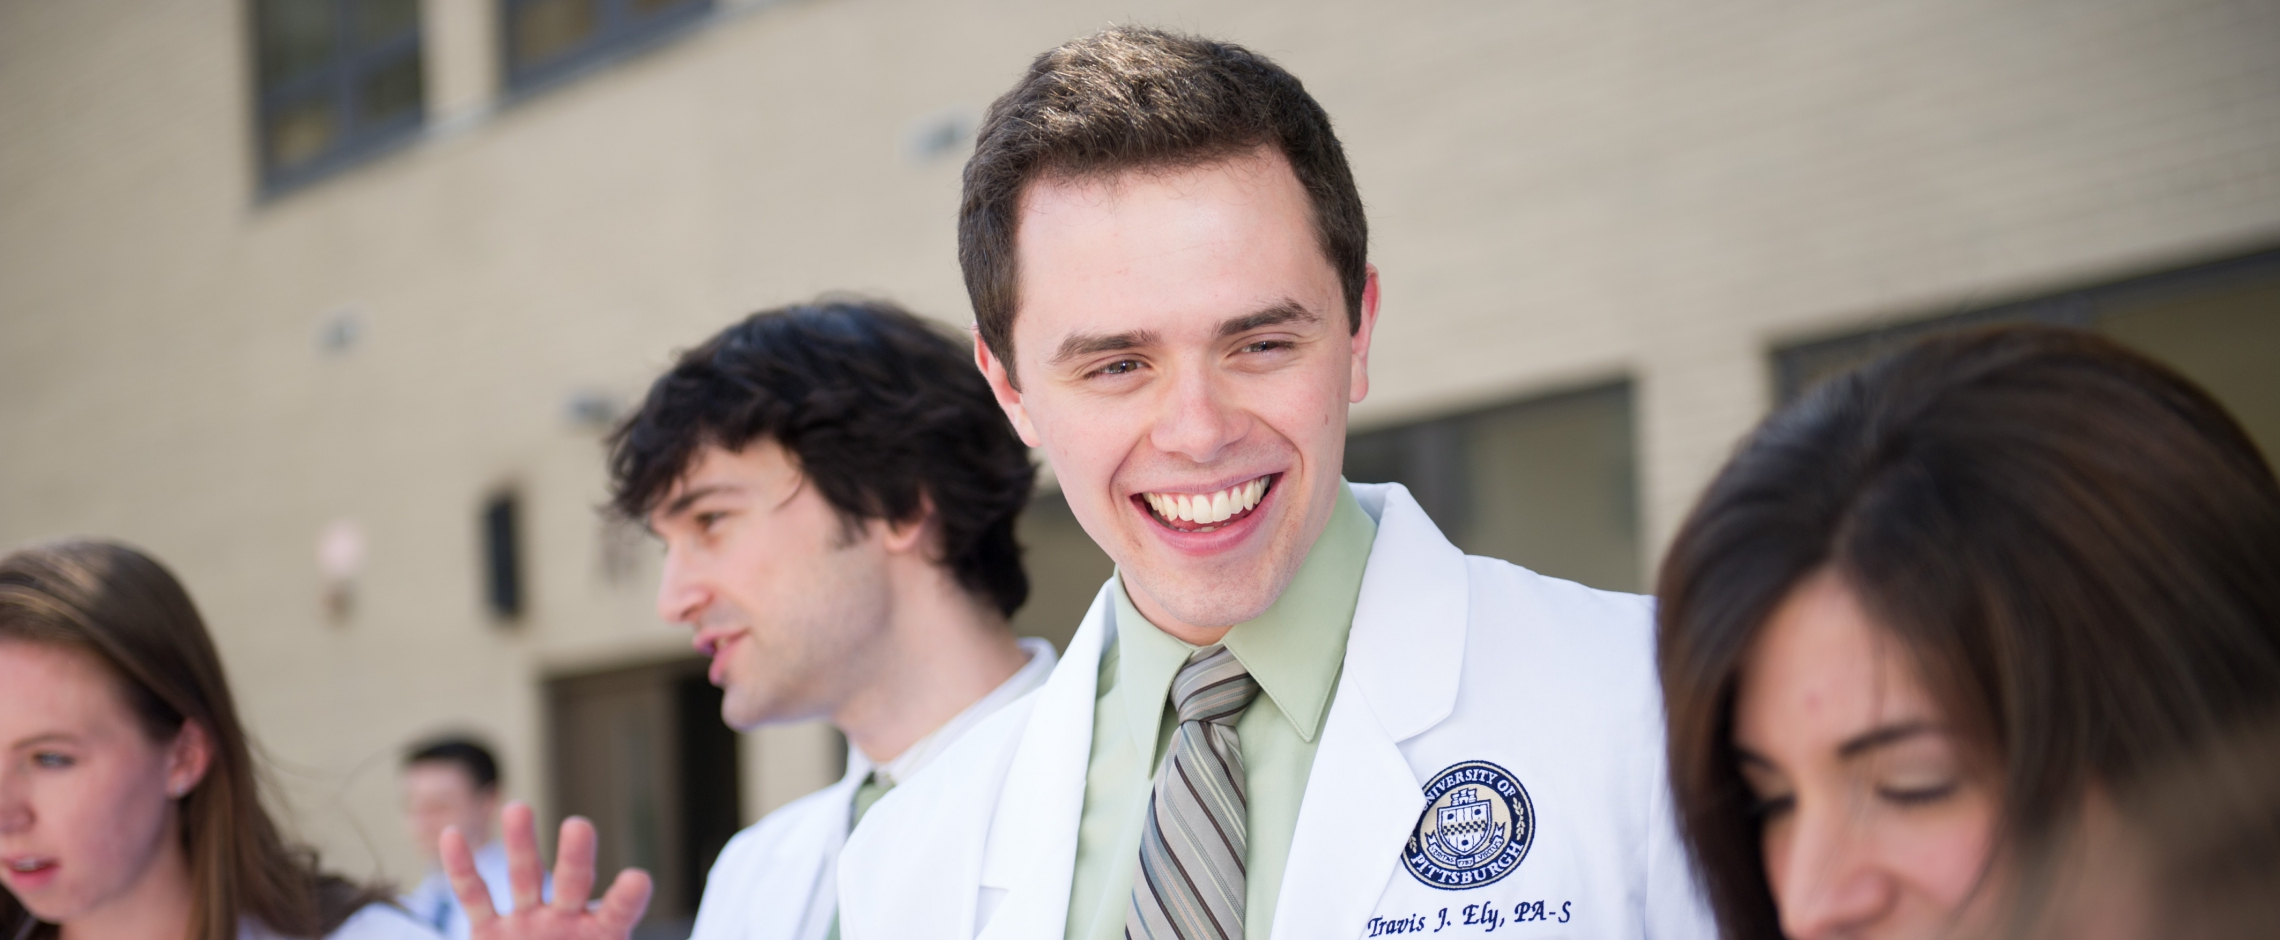 PA Student in white coat smiling